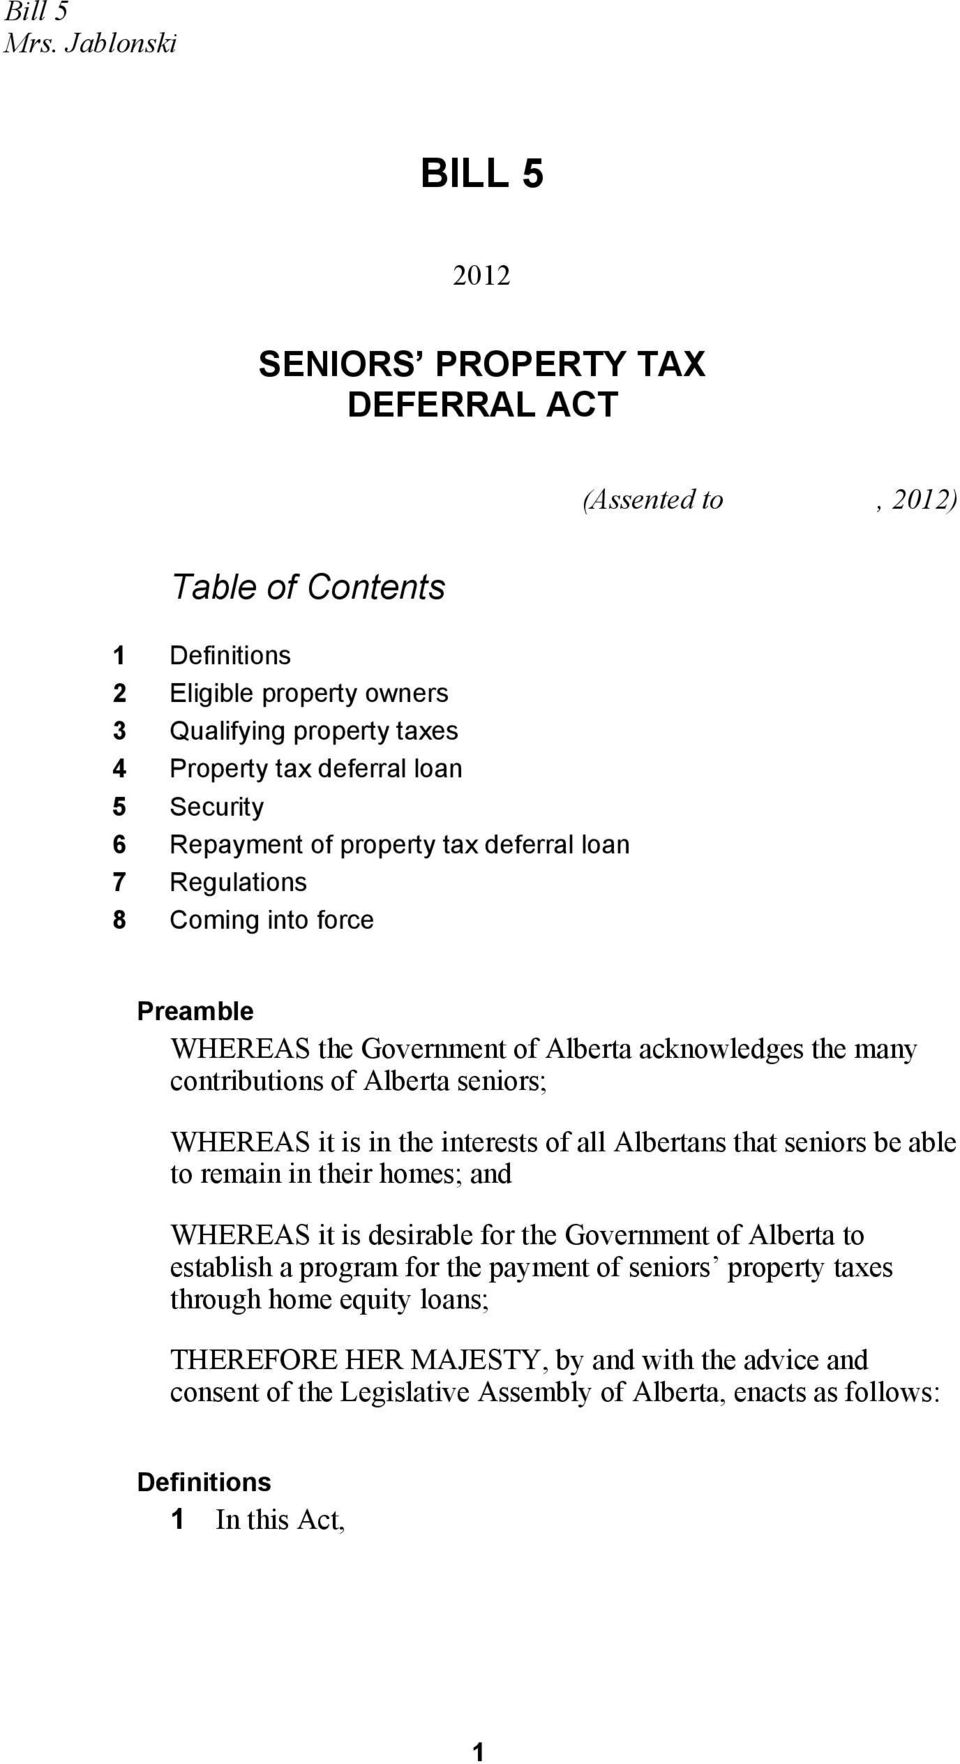 Security 6 Repayment of property tax deferral loan 7 Regulations 8 Coming into force Preamble WHEREAS the Government of Alberta acknowledges the many contributions of Alberta seniors; WHEREAS it